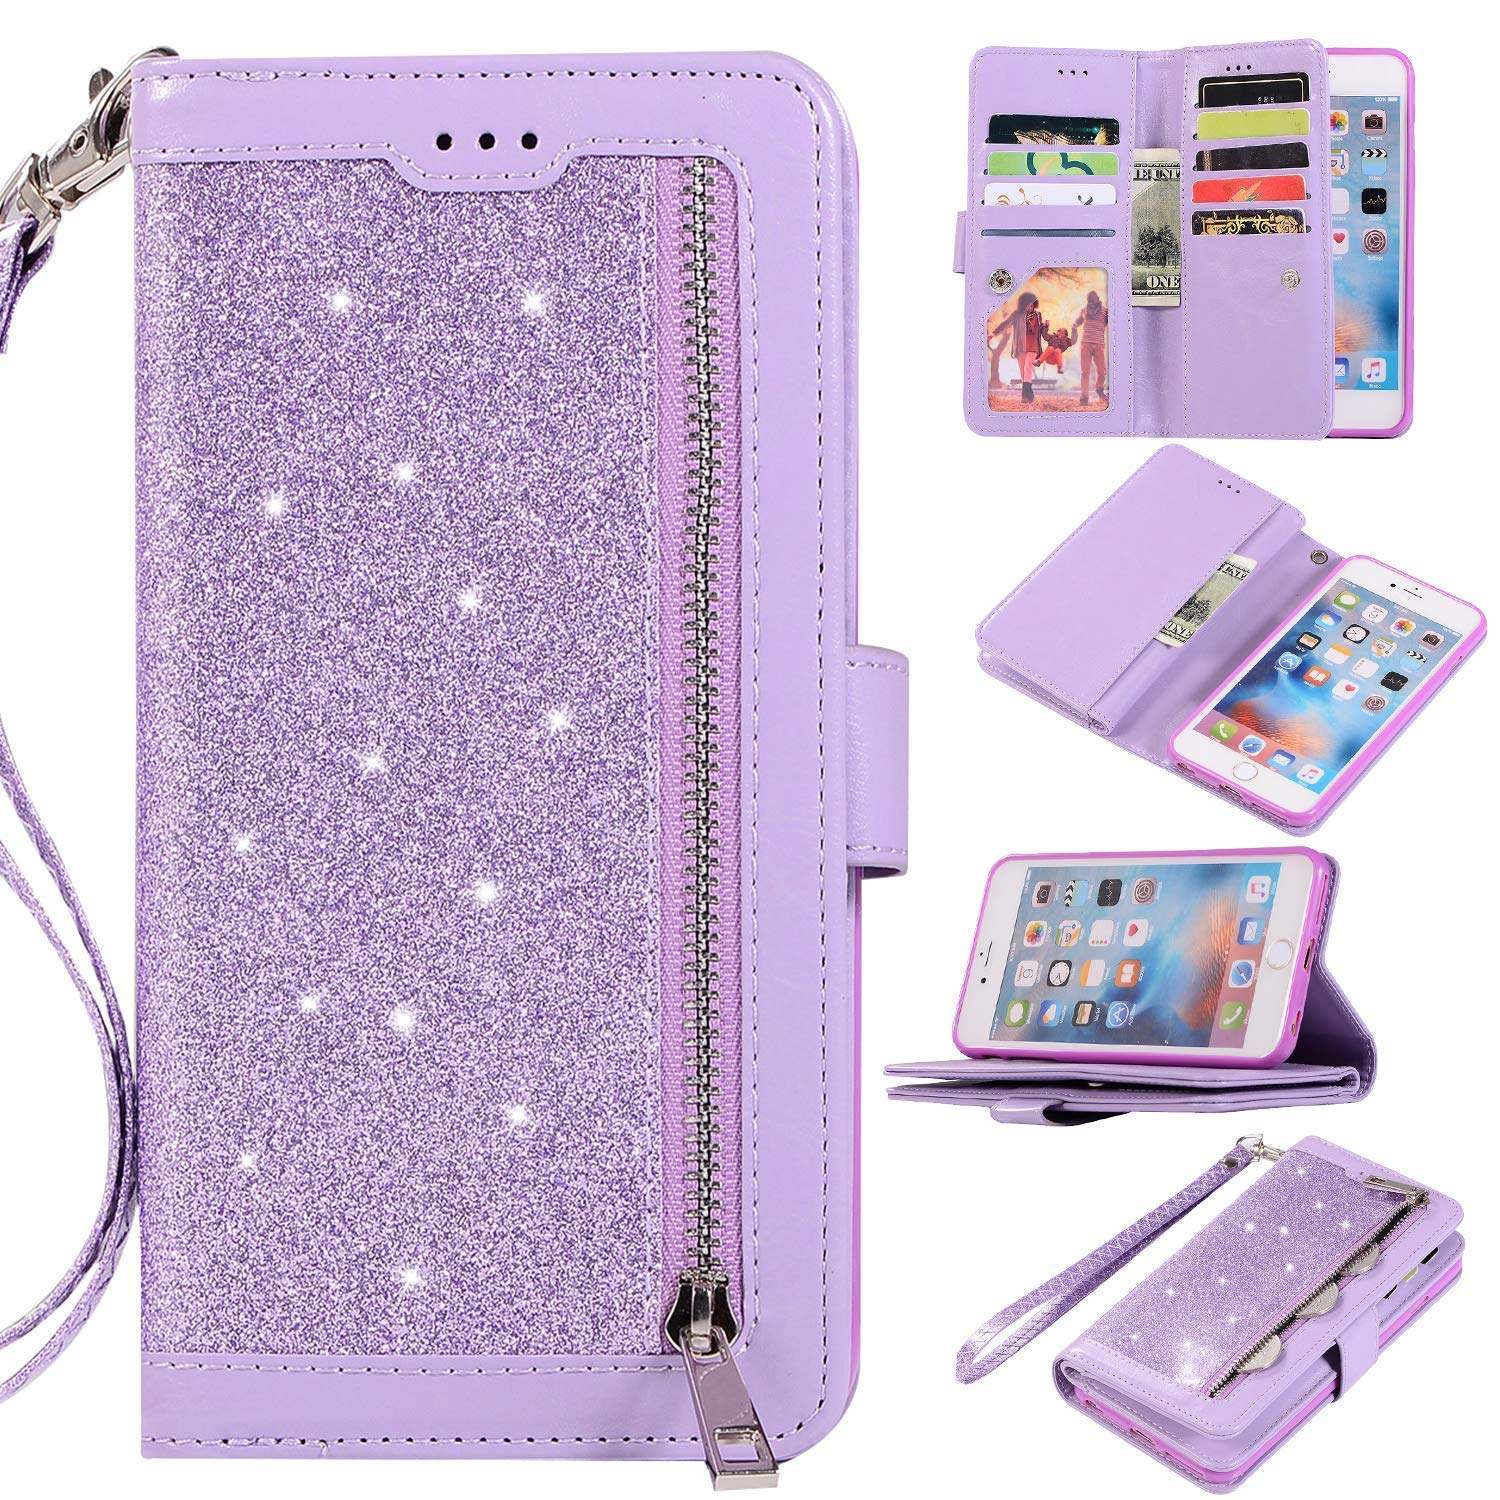 Hnzxy Compatible for Samsung Galaxy J6 2018 Case,Galaxy J6 2018 Cover,Bling Glitter Vintage PU Leather Flip Wallet Magnetic Case Multi-Function 9 Credit Card Slots with Zipper Coins Purse Cover,Purple by Hnzxy